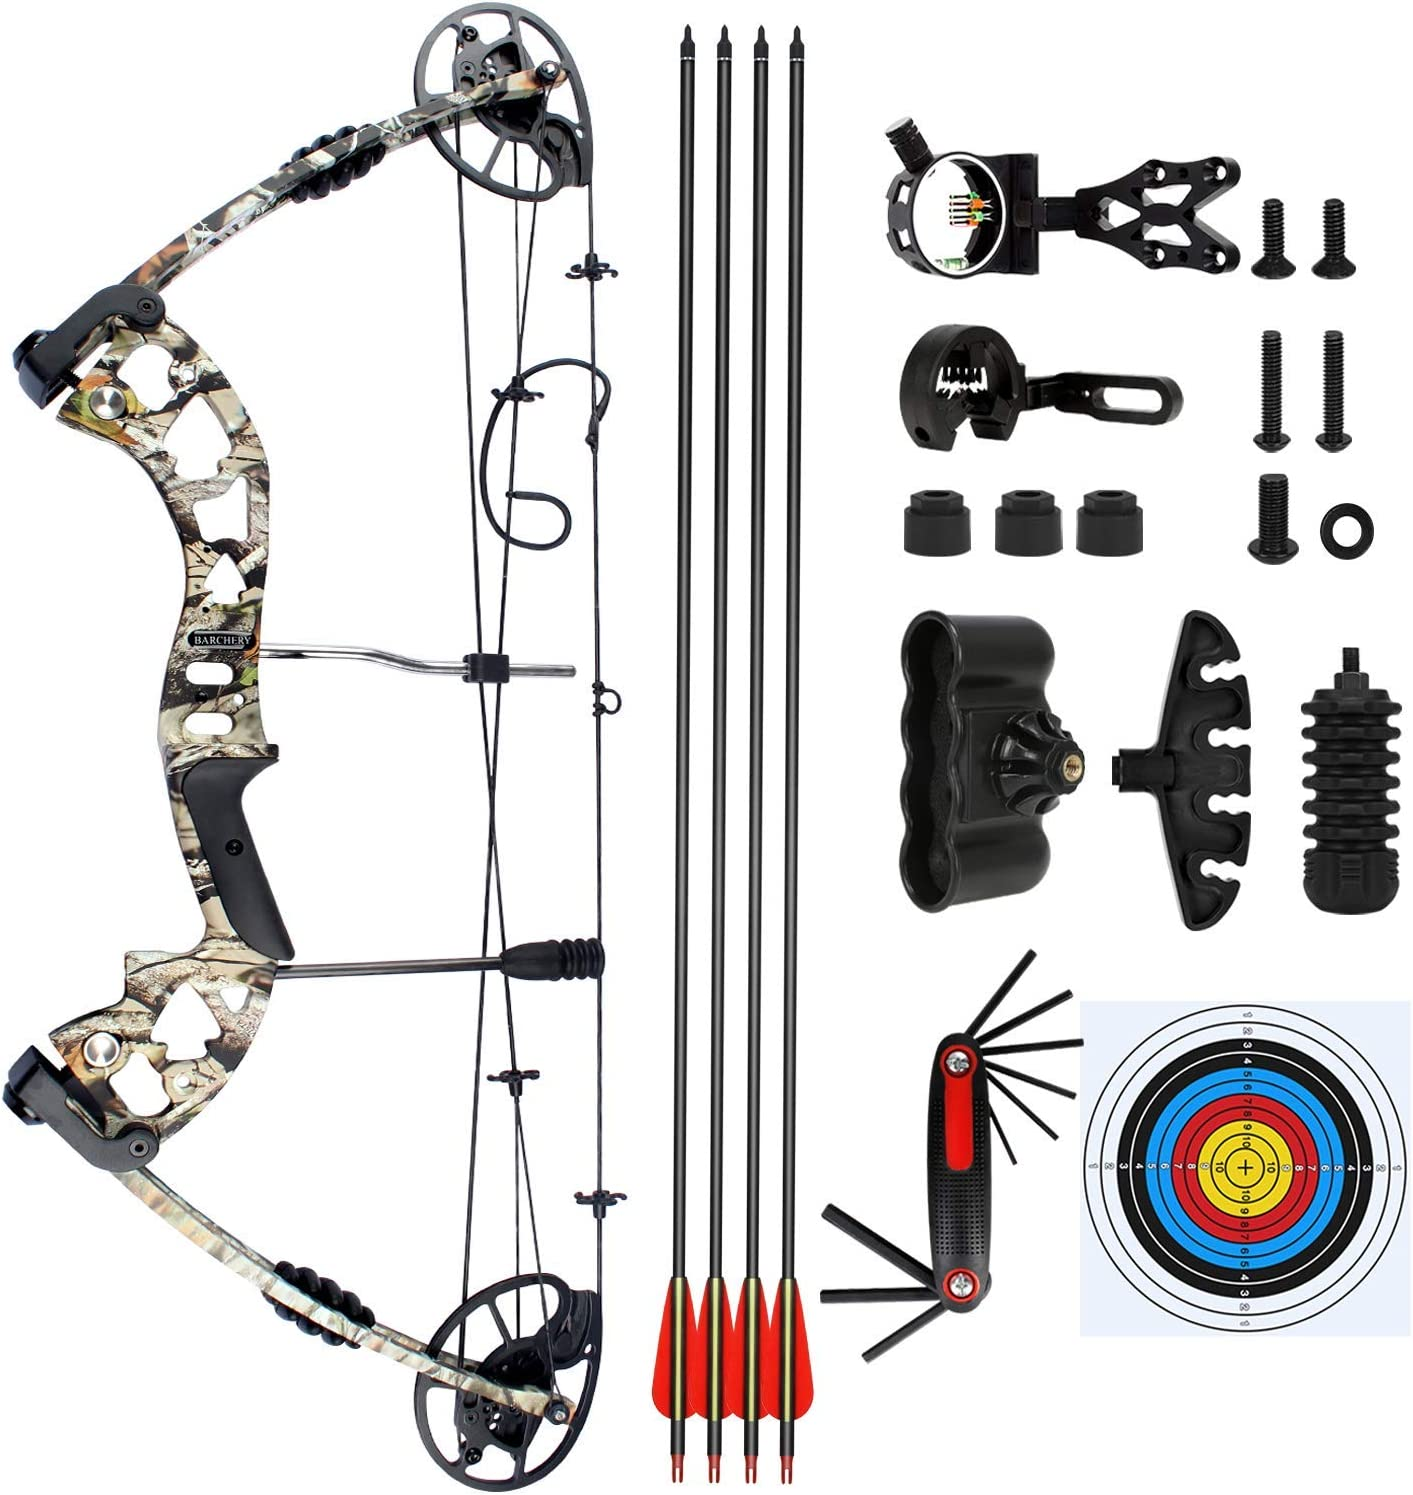 BARCHERY Compound Hunting Bow Kit Archery Hunting Bow Package for Adults with Carbon Arrows